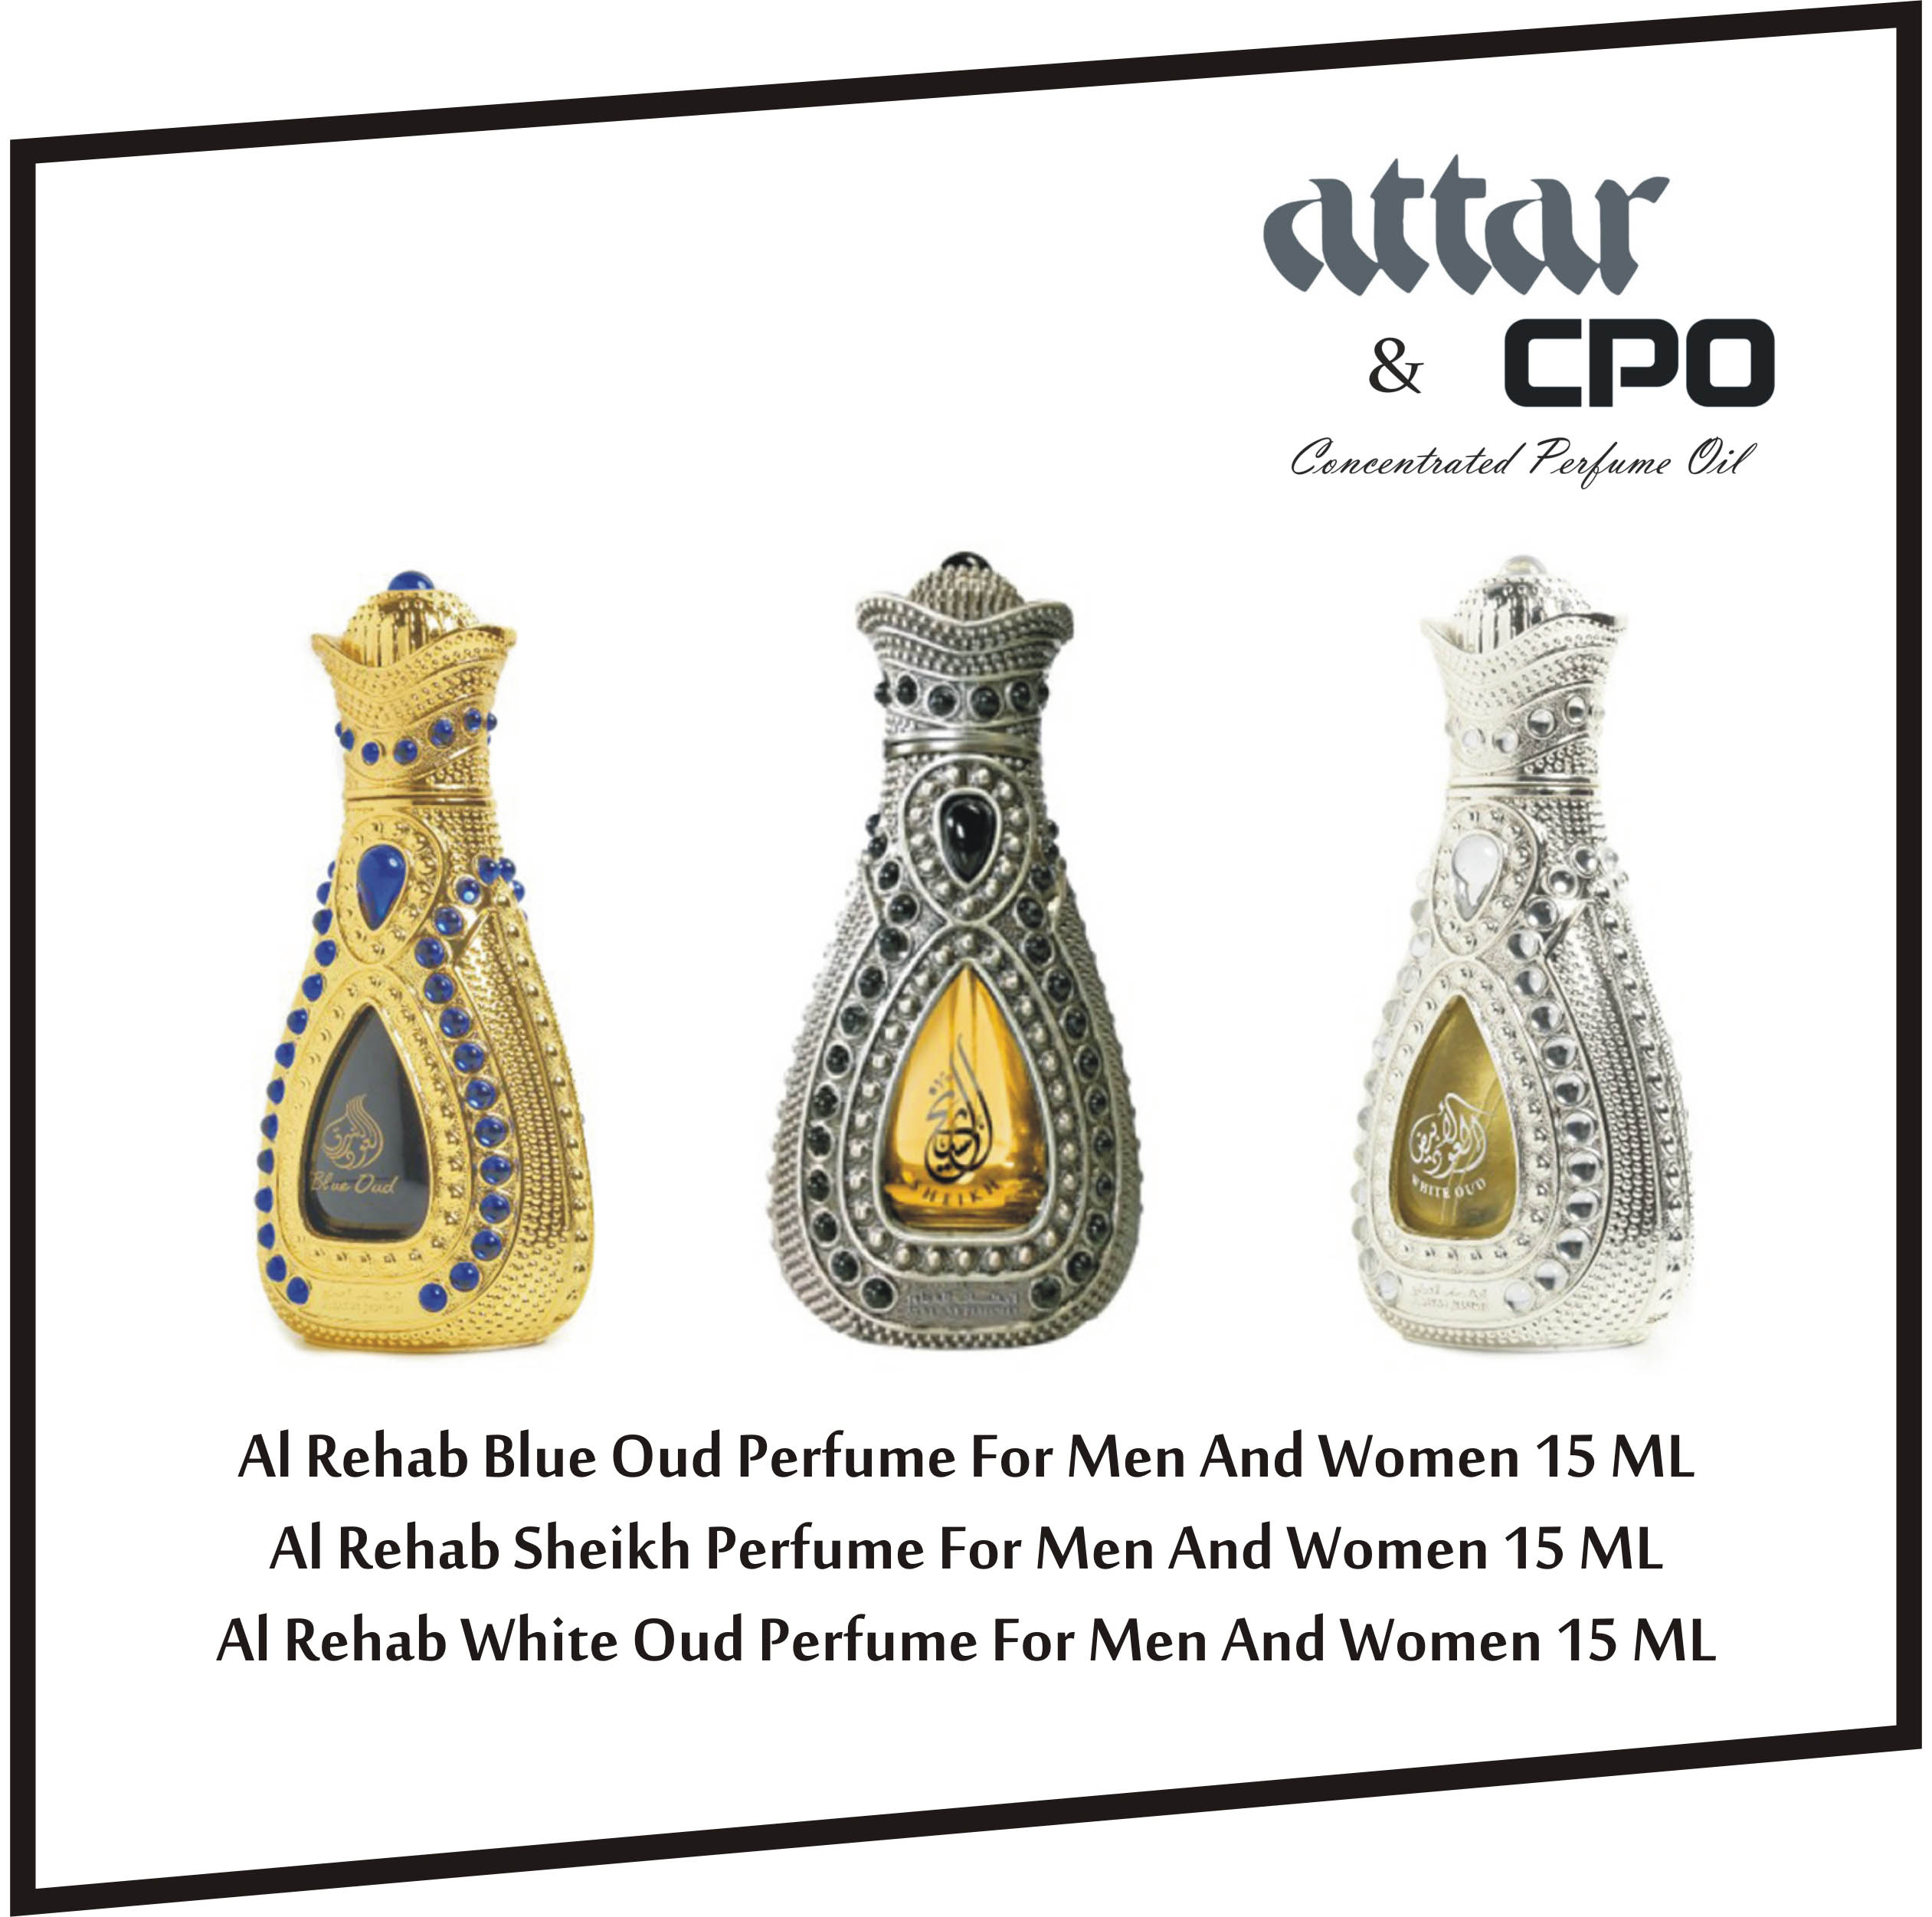 al-rehab-sheikh-perfume-for-men-and-women-white-oud-blue-oud